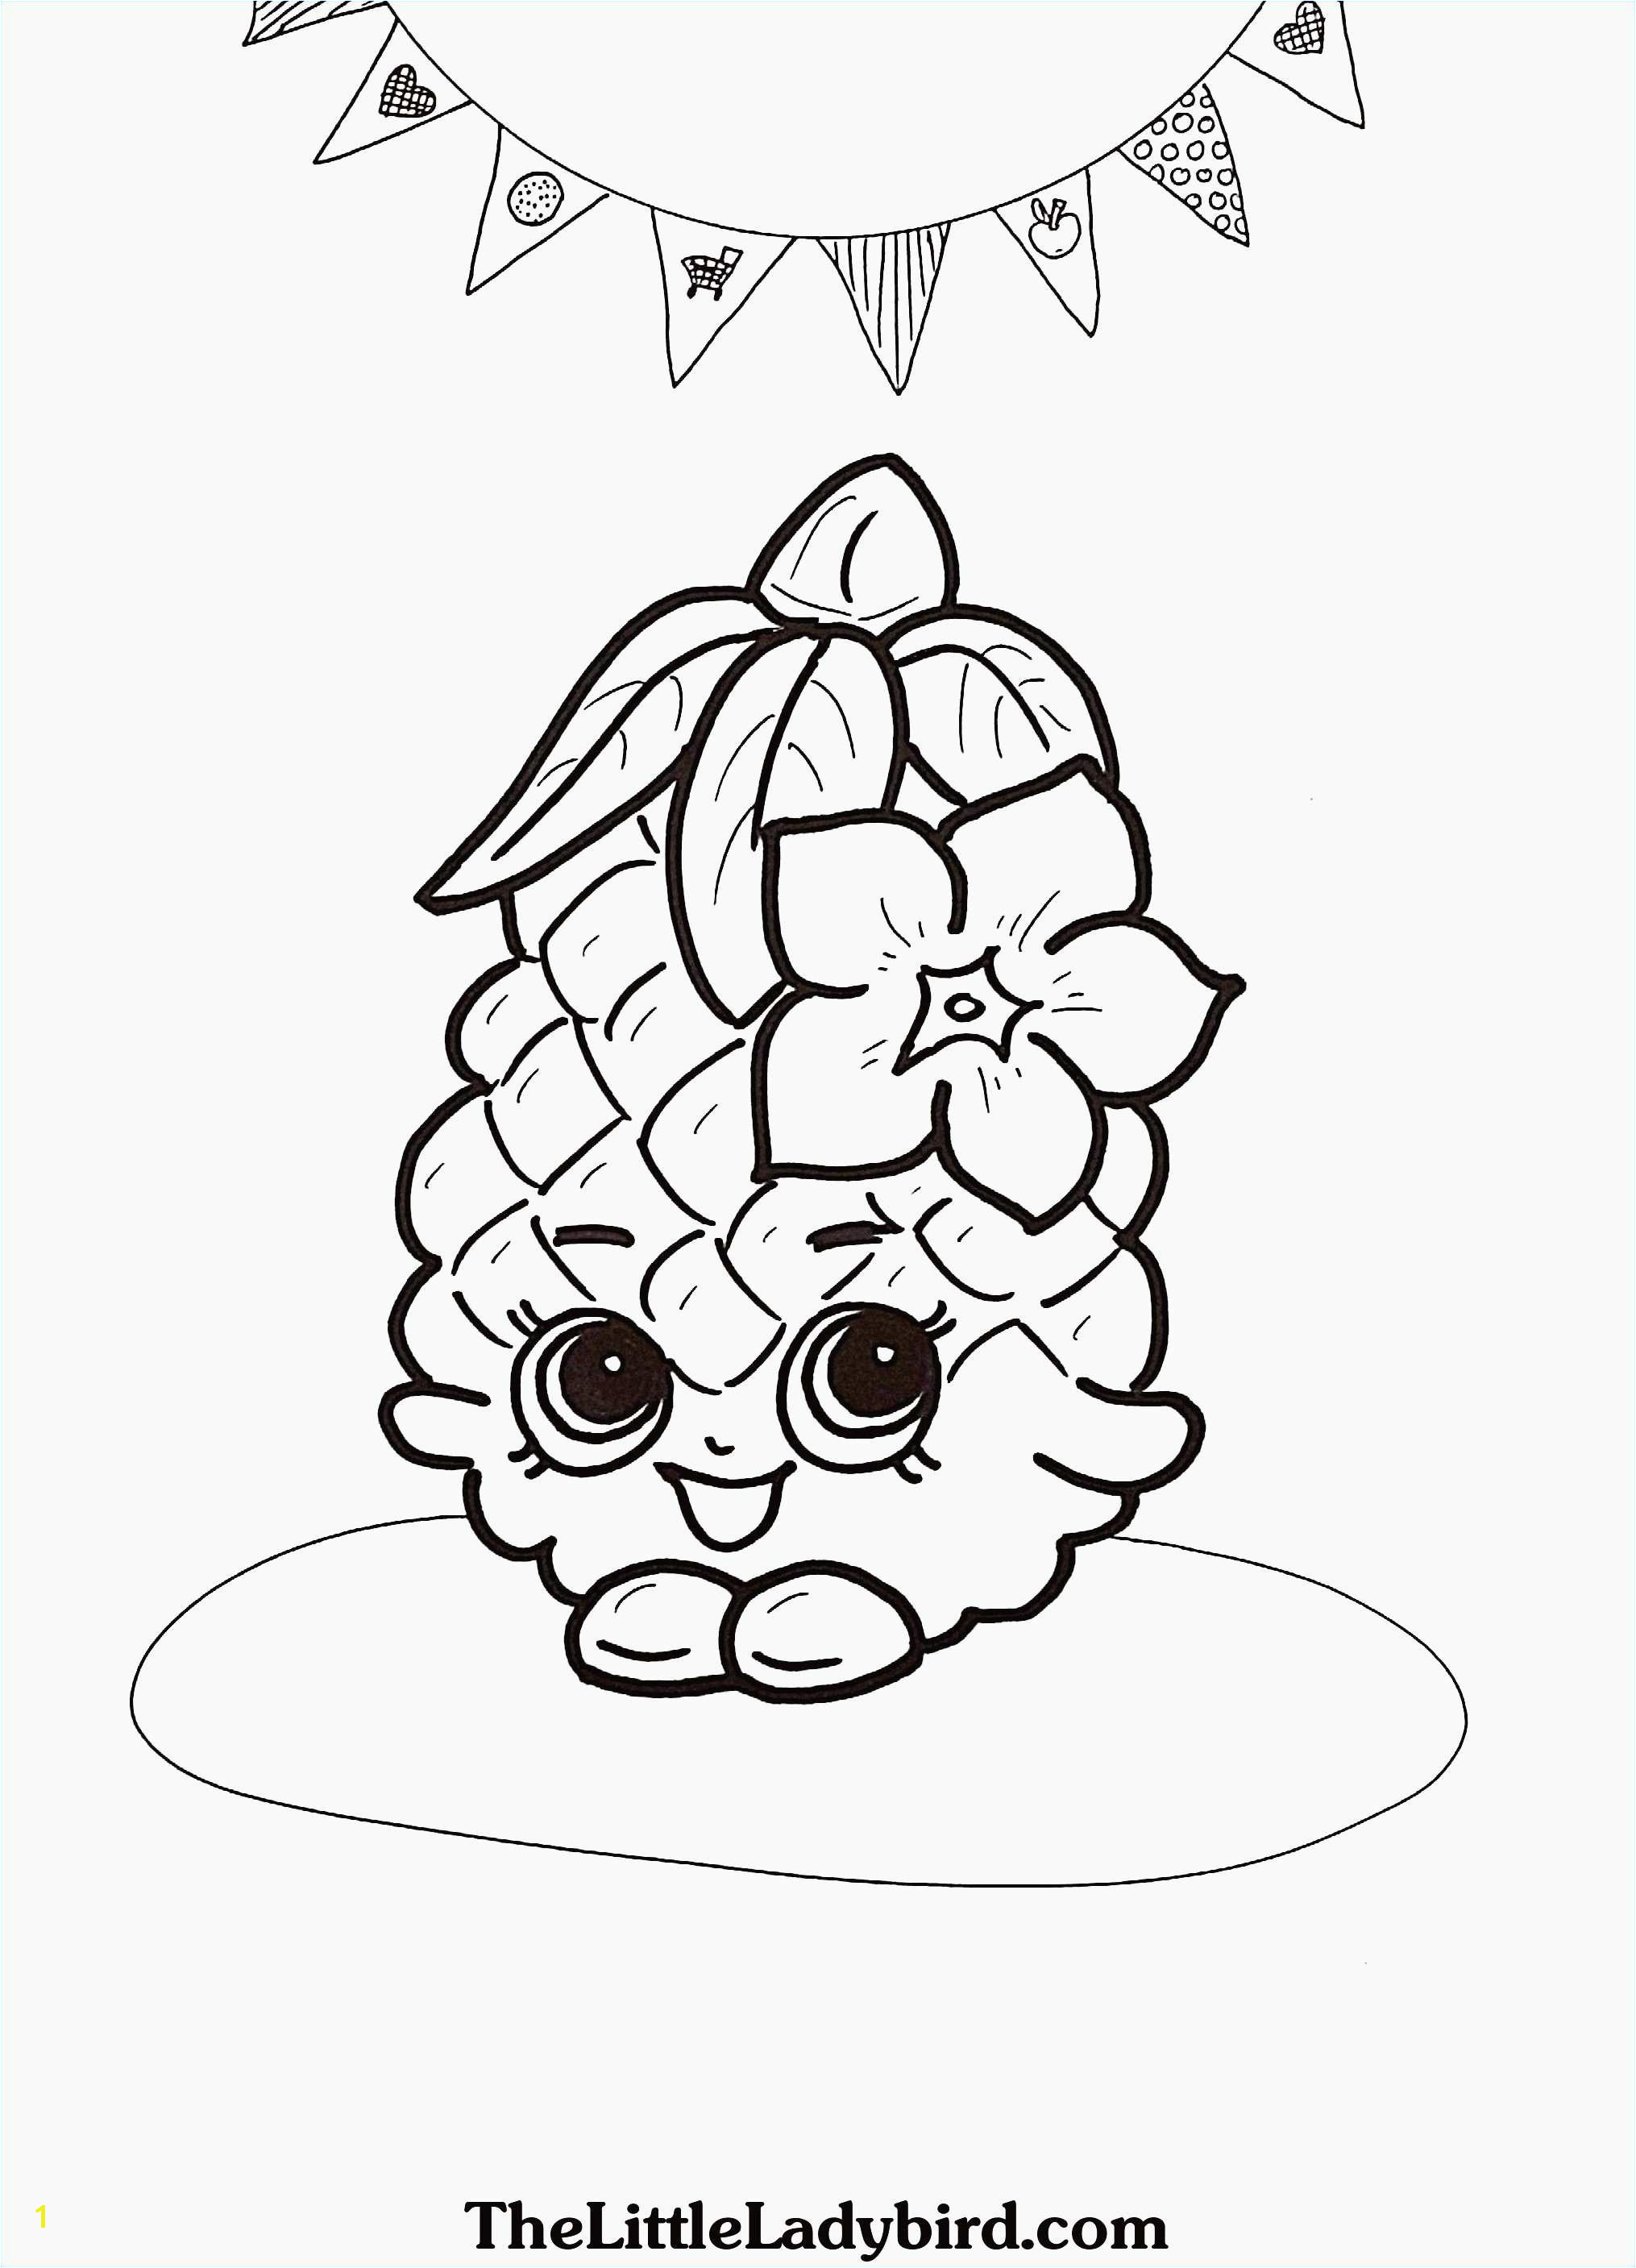 Coloring Pages Of Trees and Flowers Make A Coloring Page Great Cool Vases Flower Vase Coloring Page